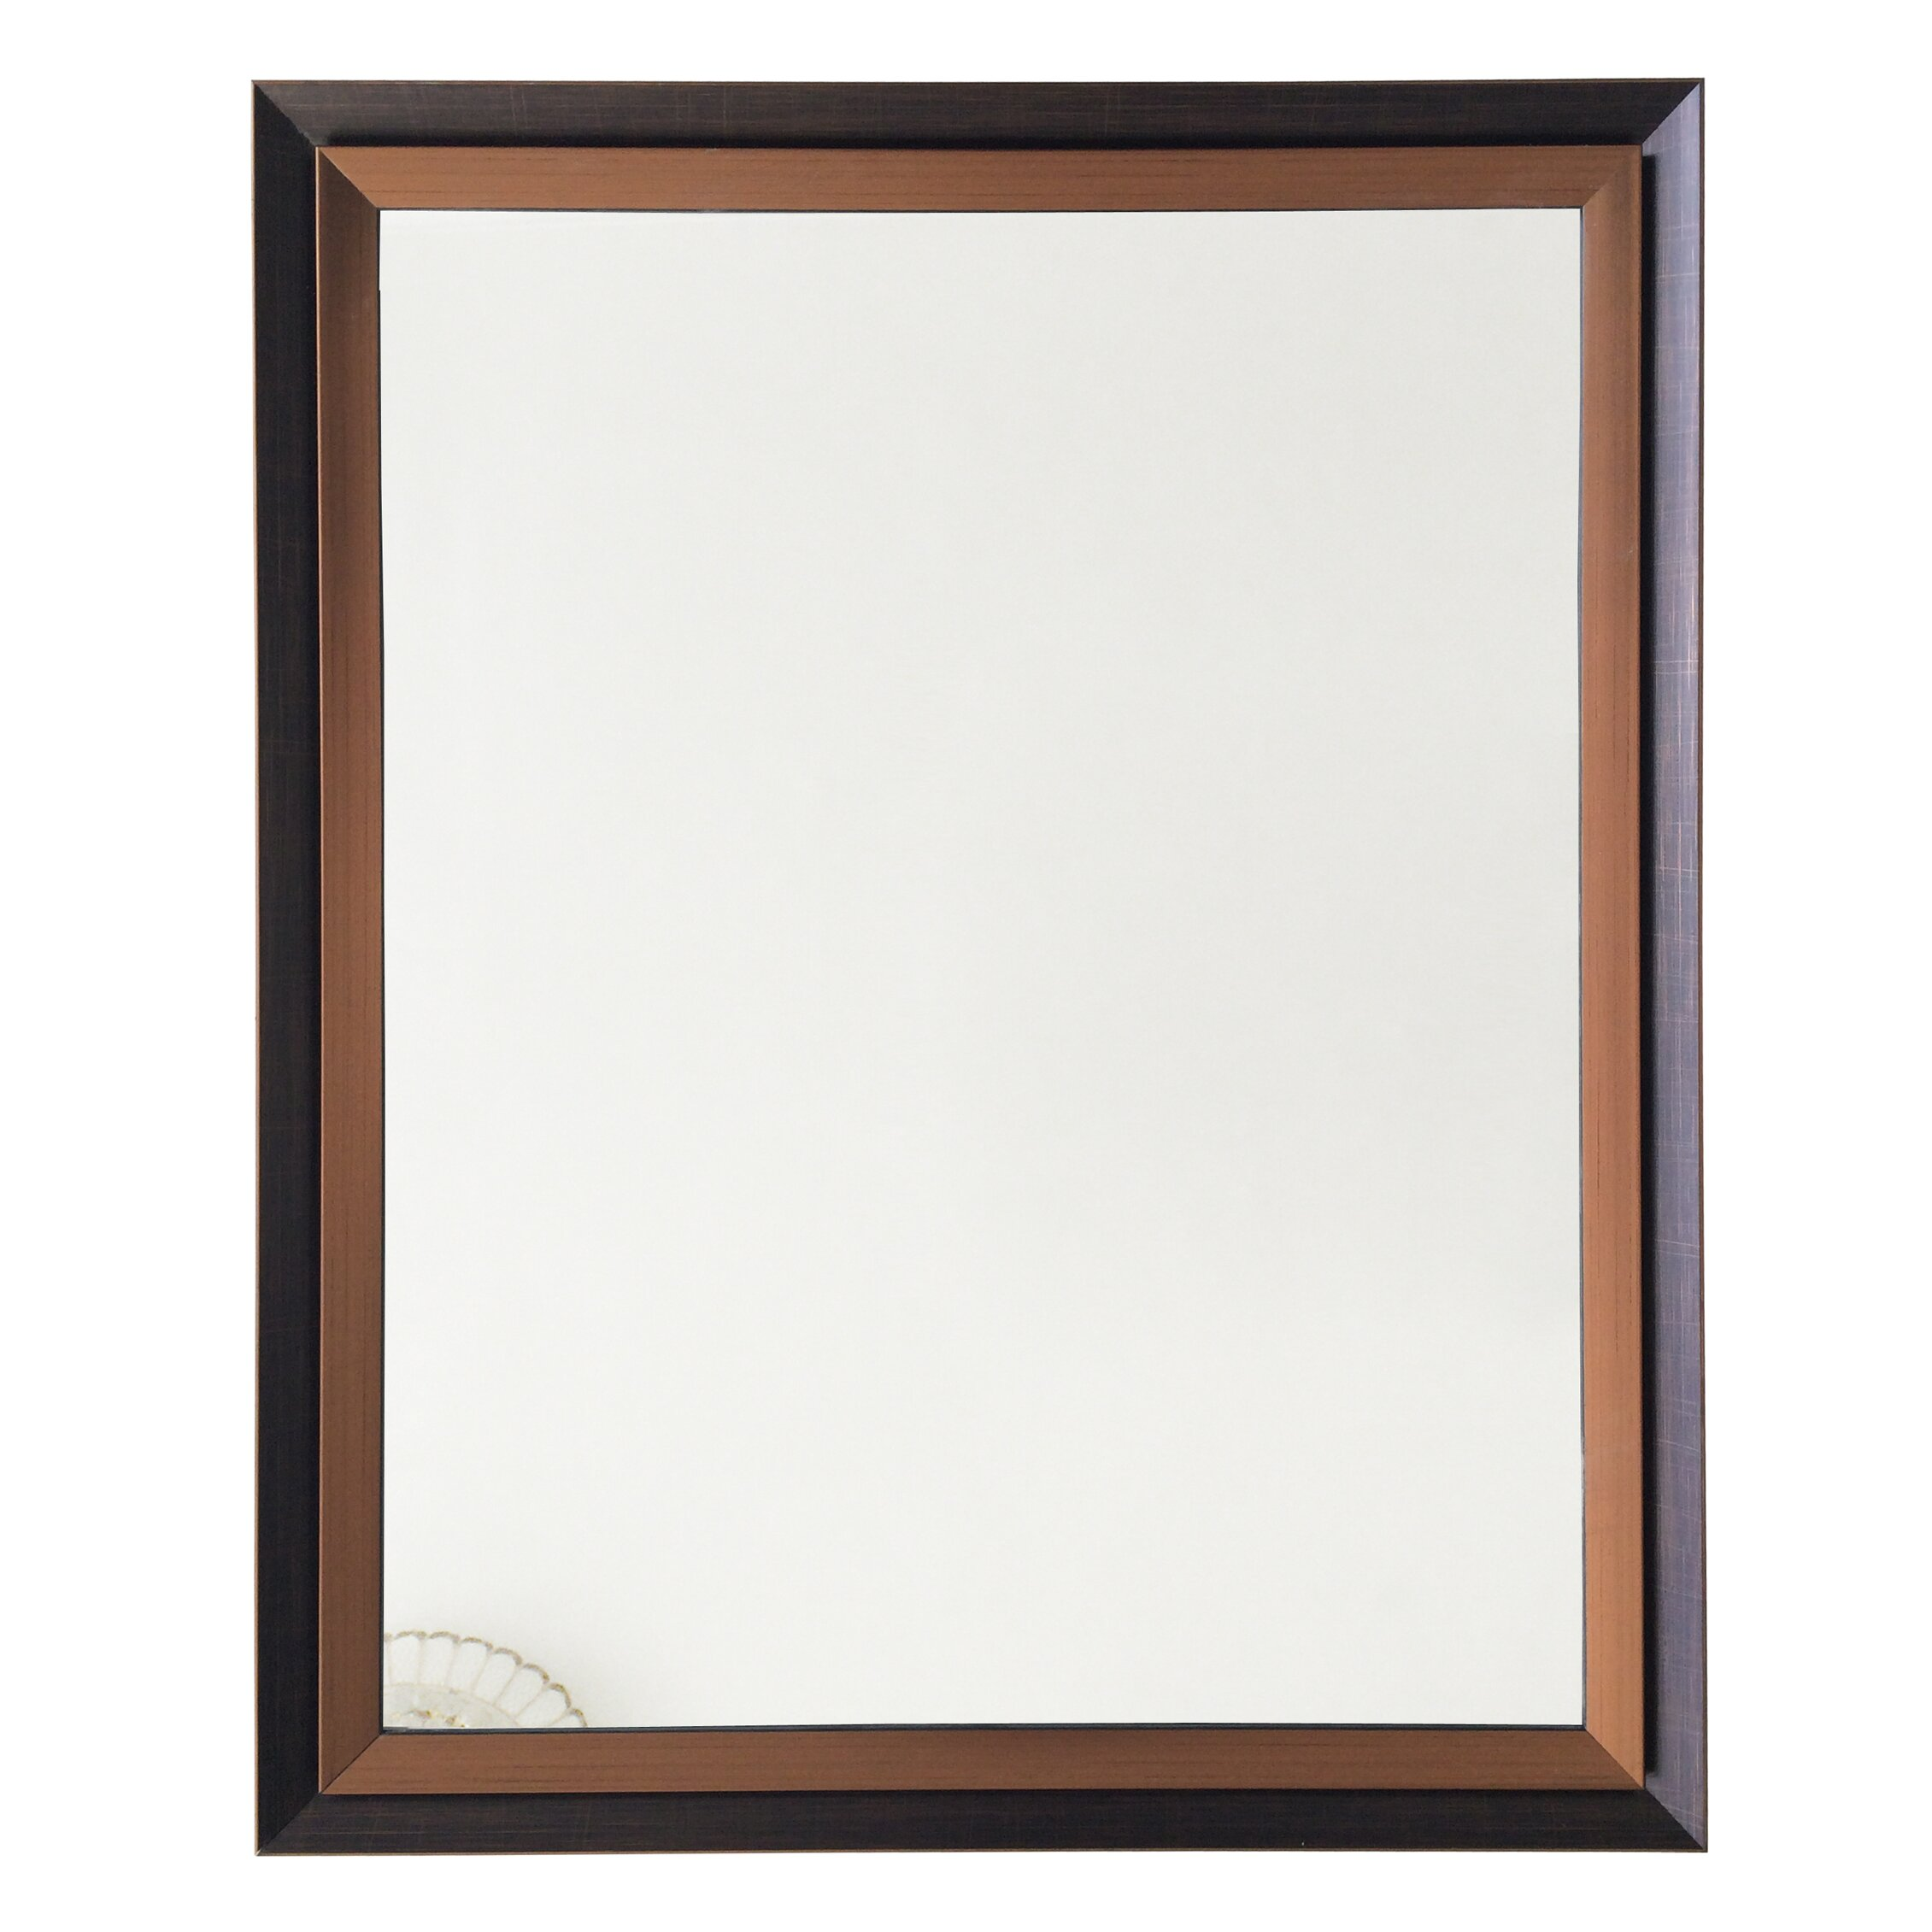 Kingwinhomedecor framed wall mirror reviews wayfair for Wall mirrors for bedrooms